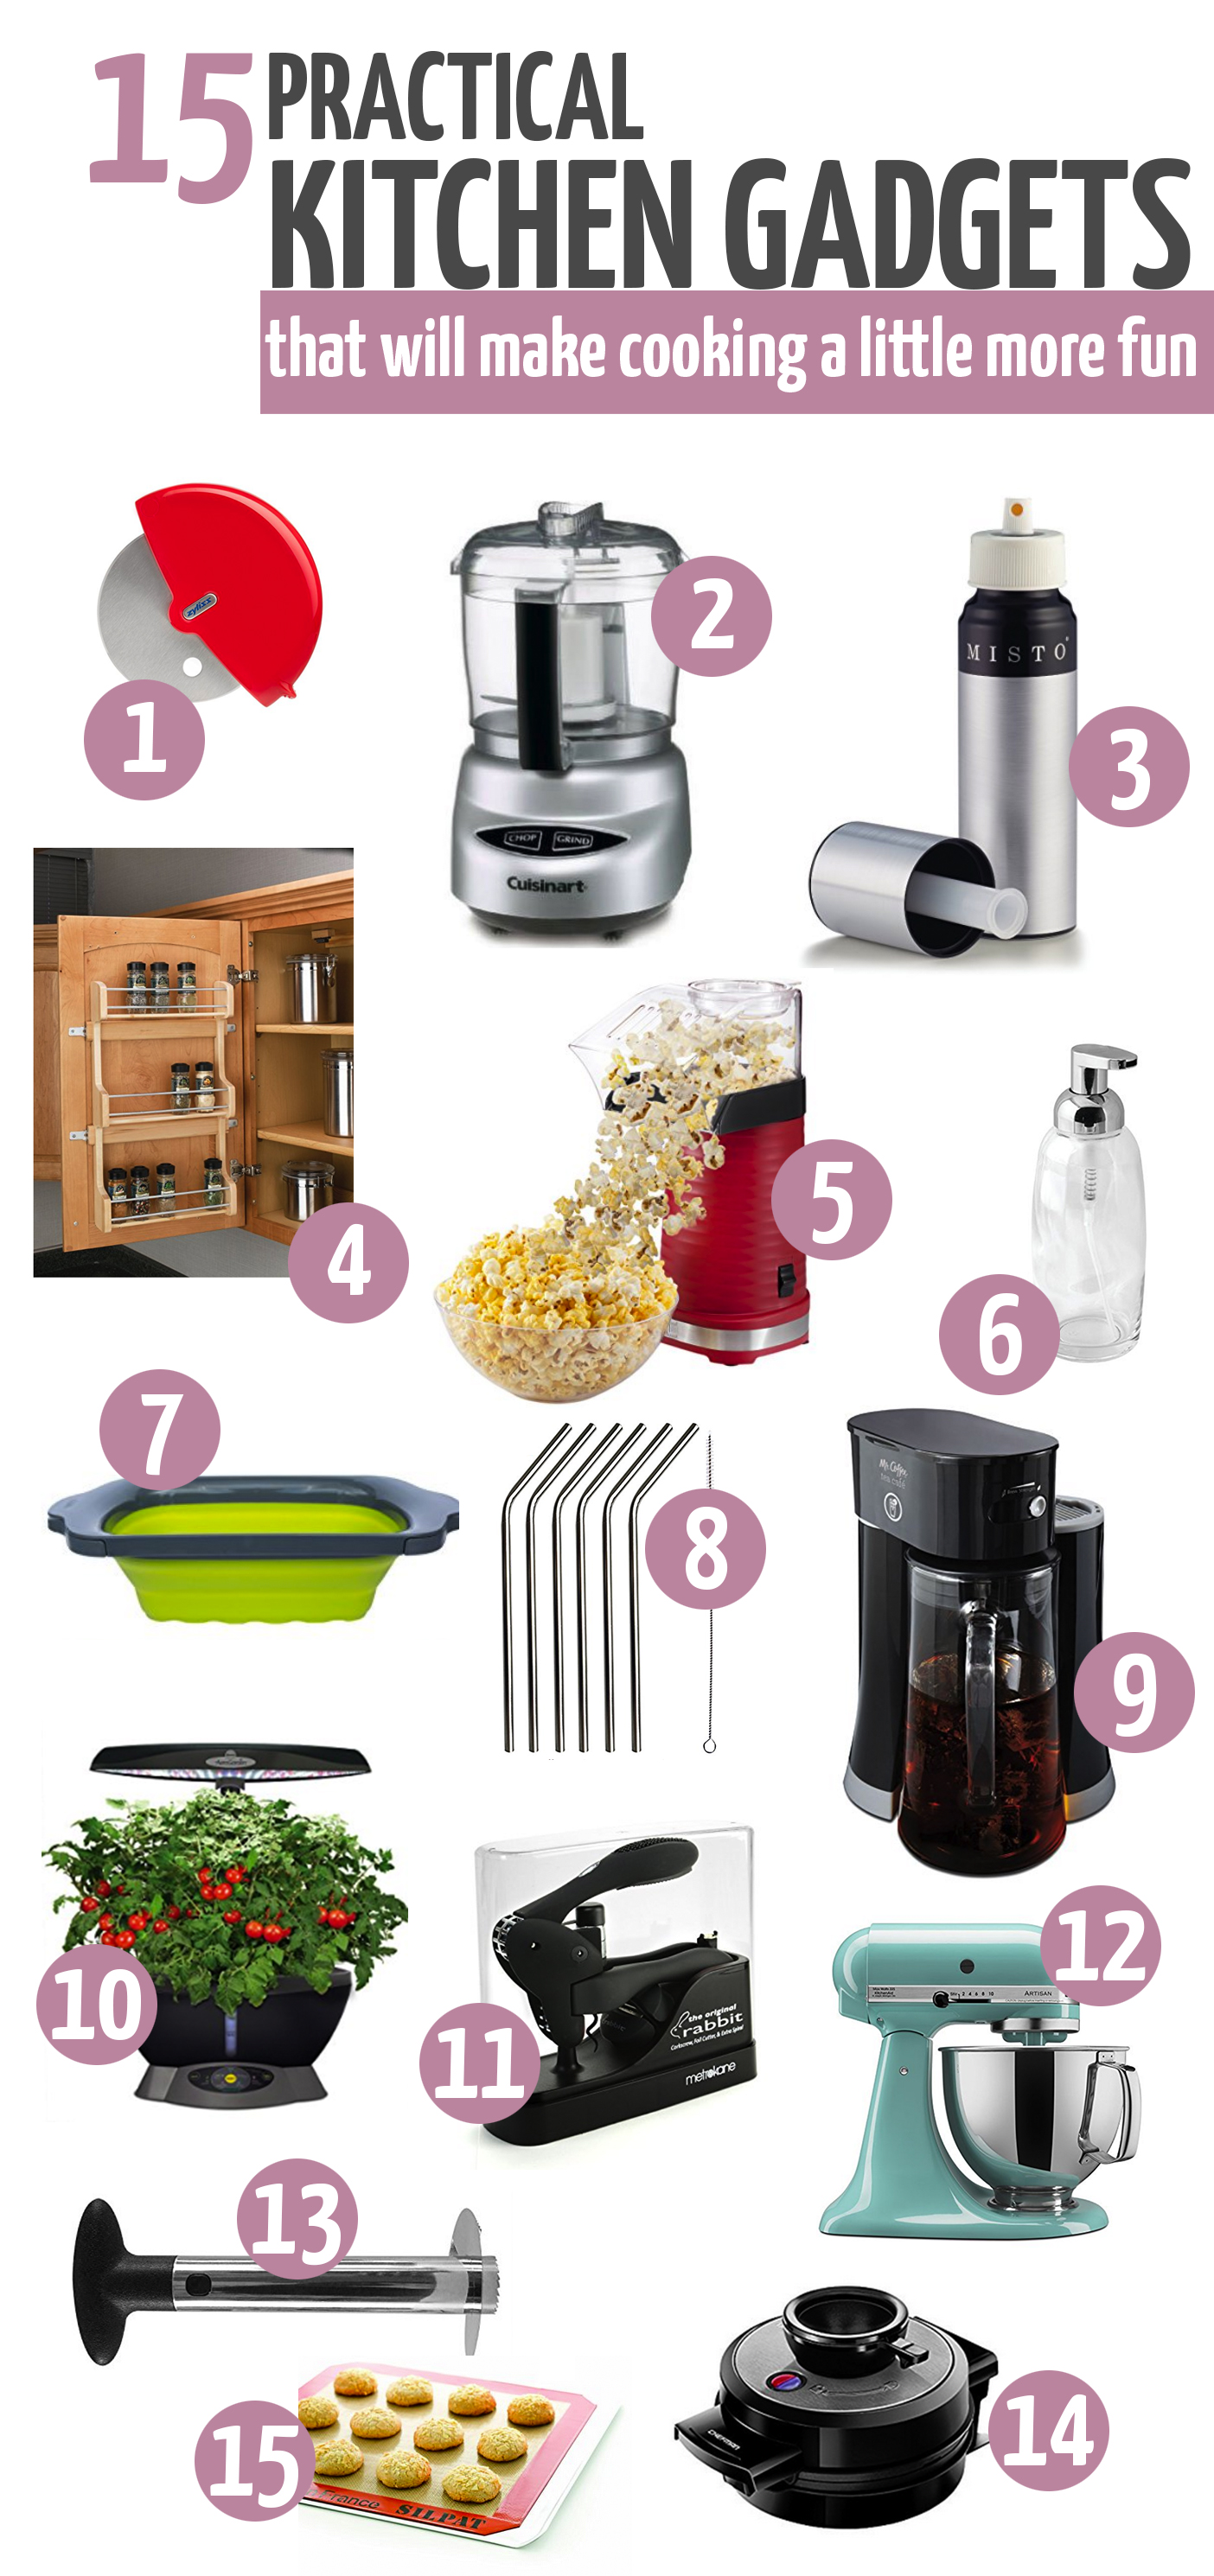 Essential Kitchen Gadgets and Cooking Tools, as Reviewed